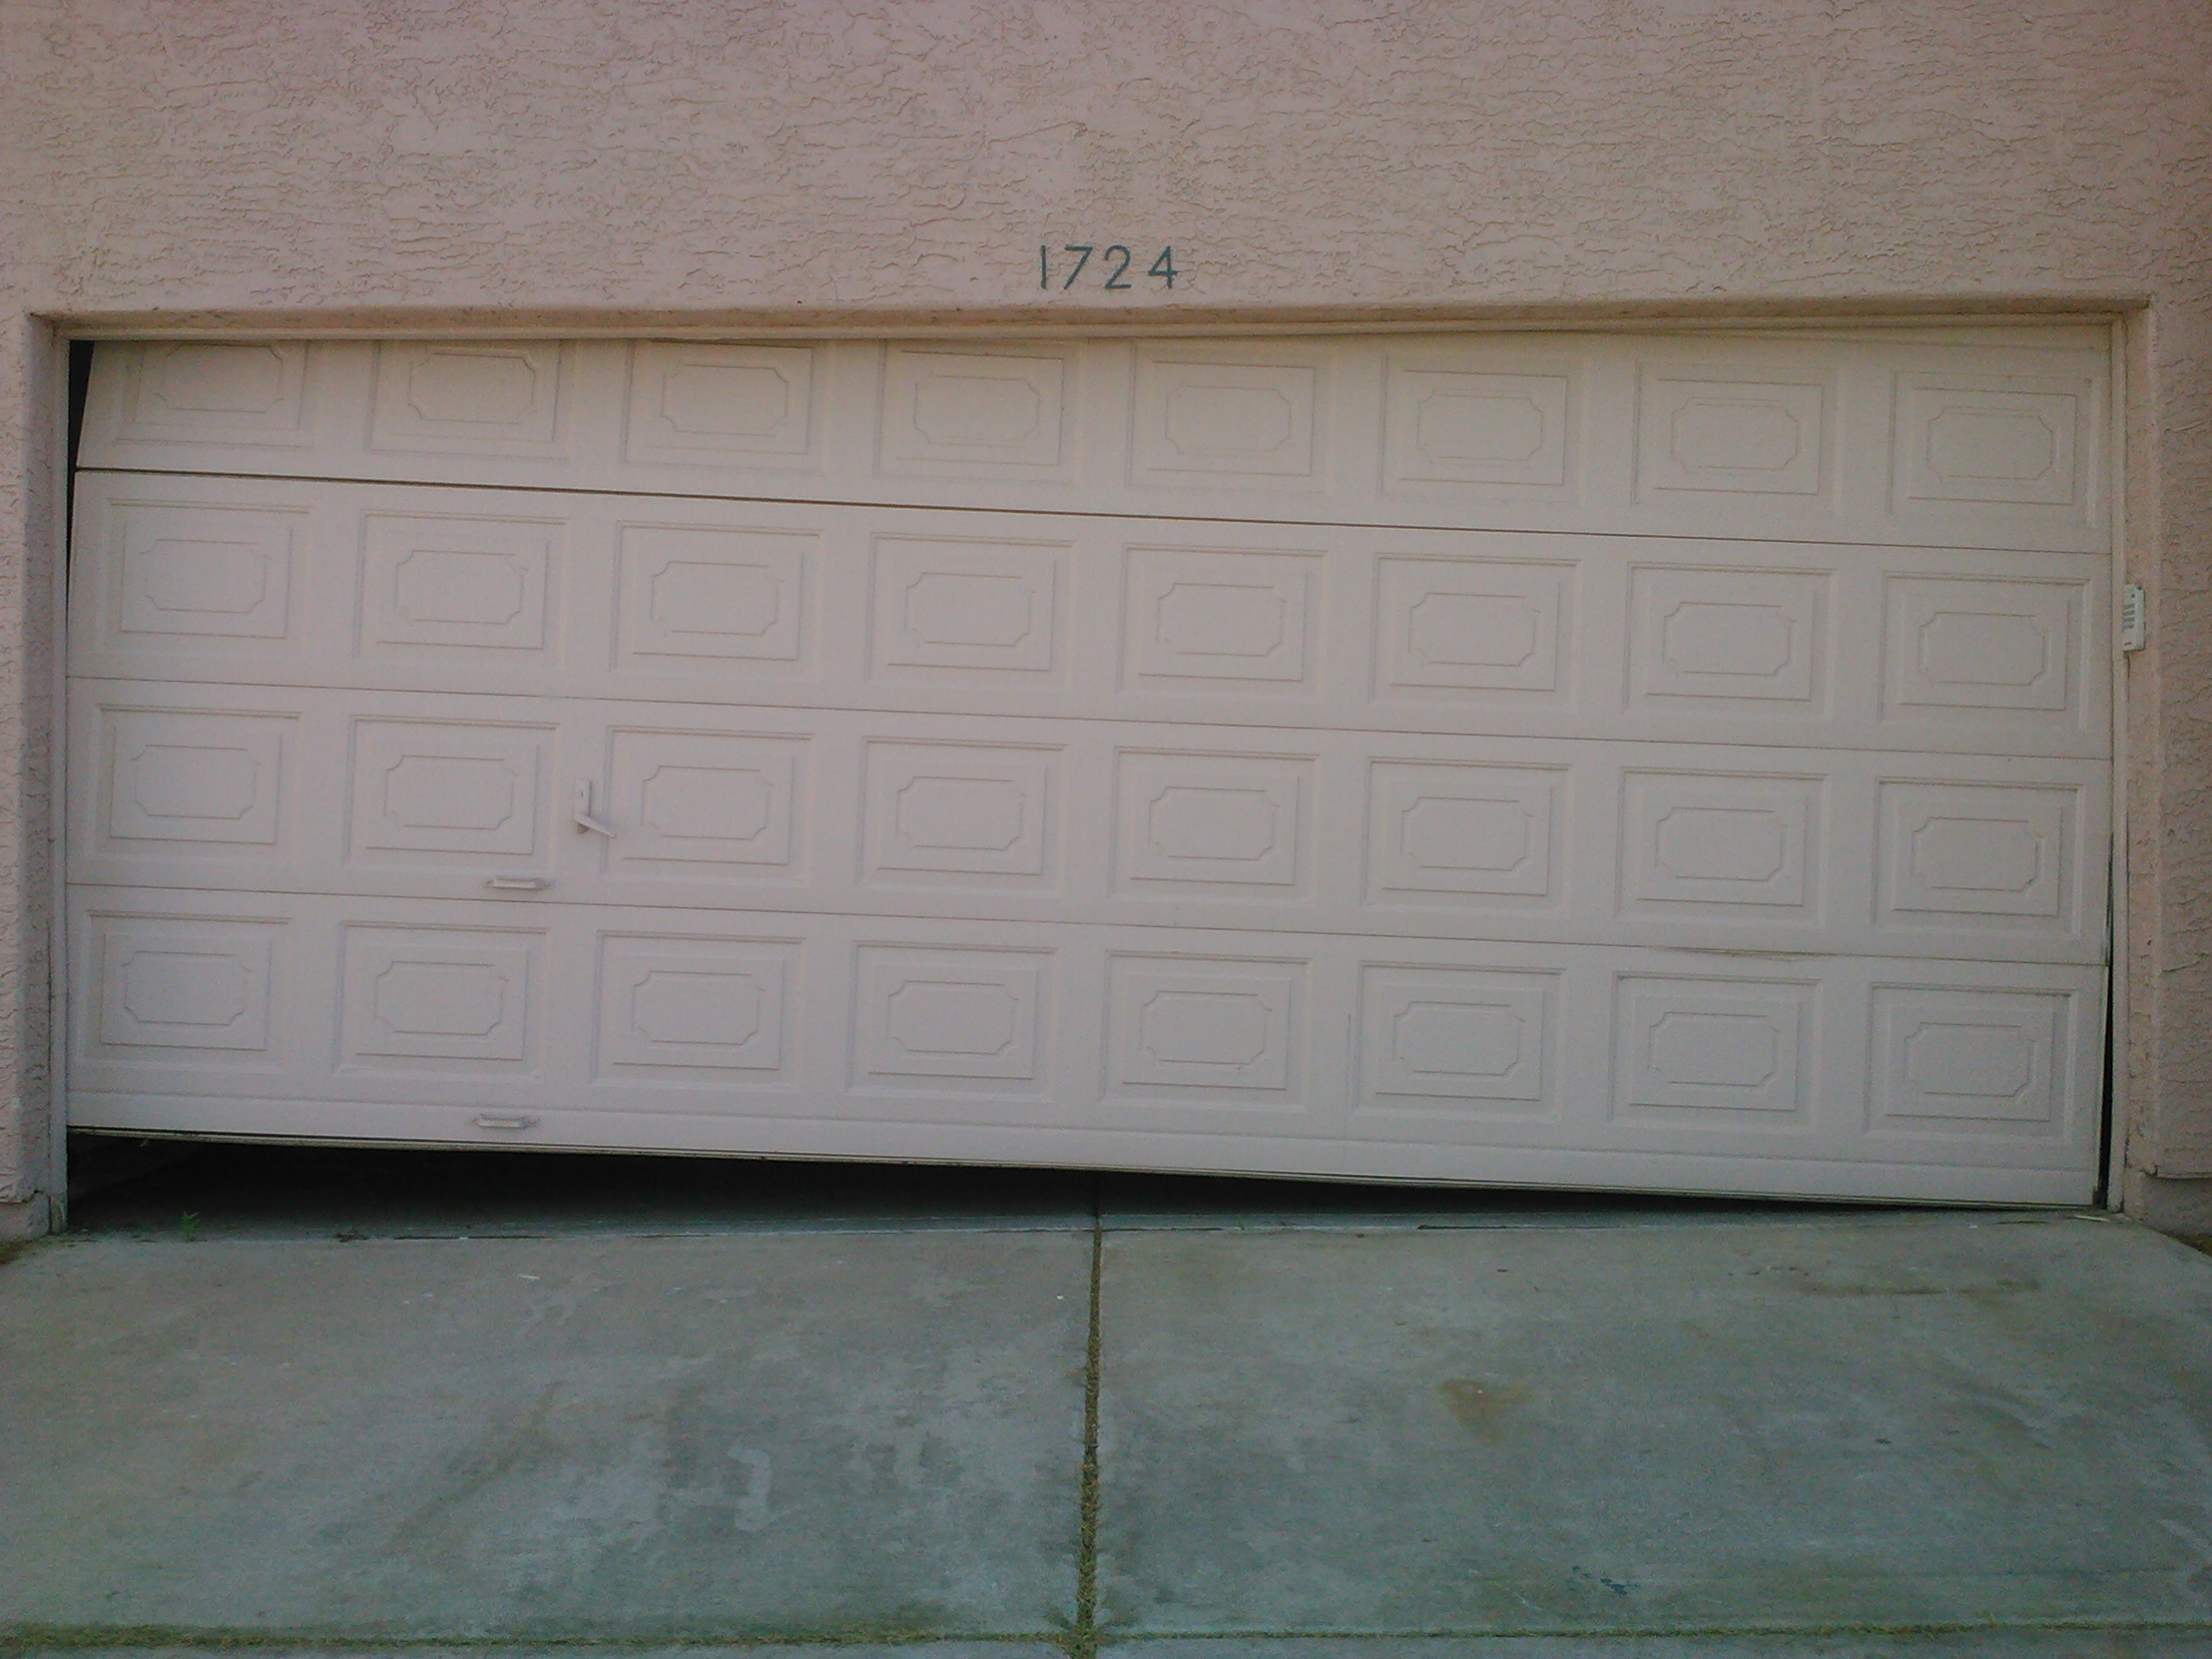 off repair aaa door replace doors track service ca and garage discount